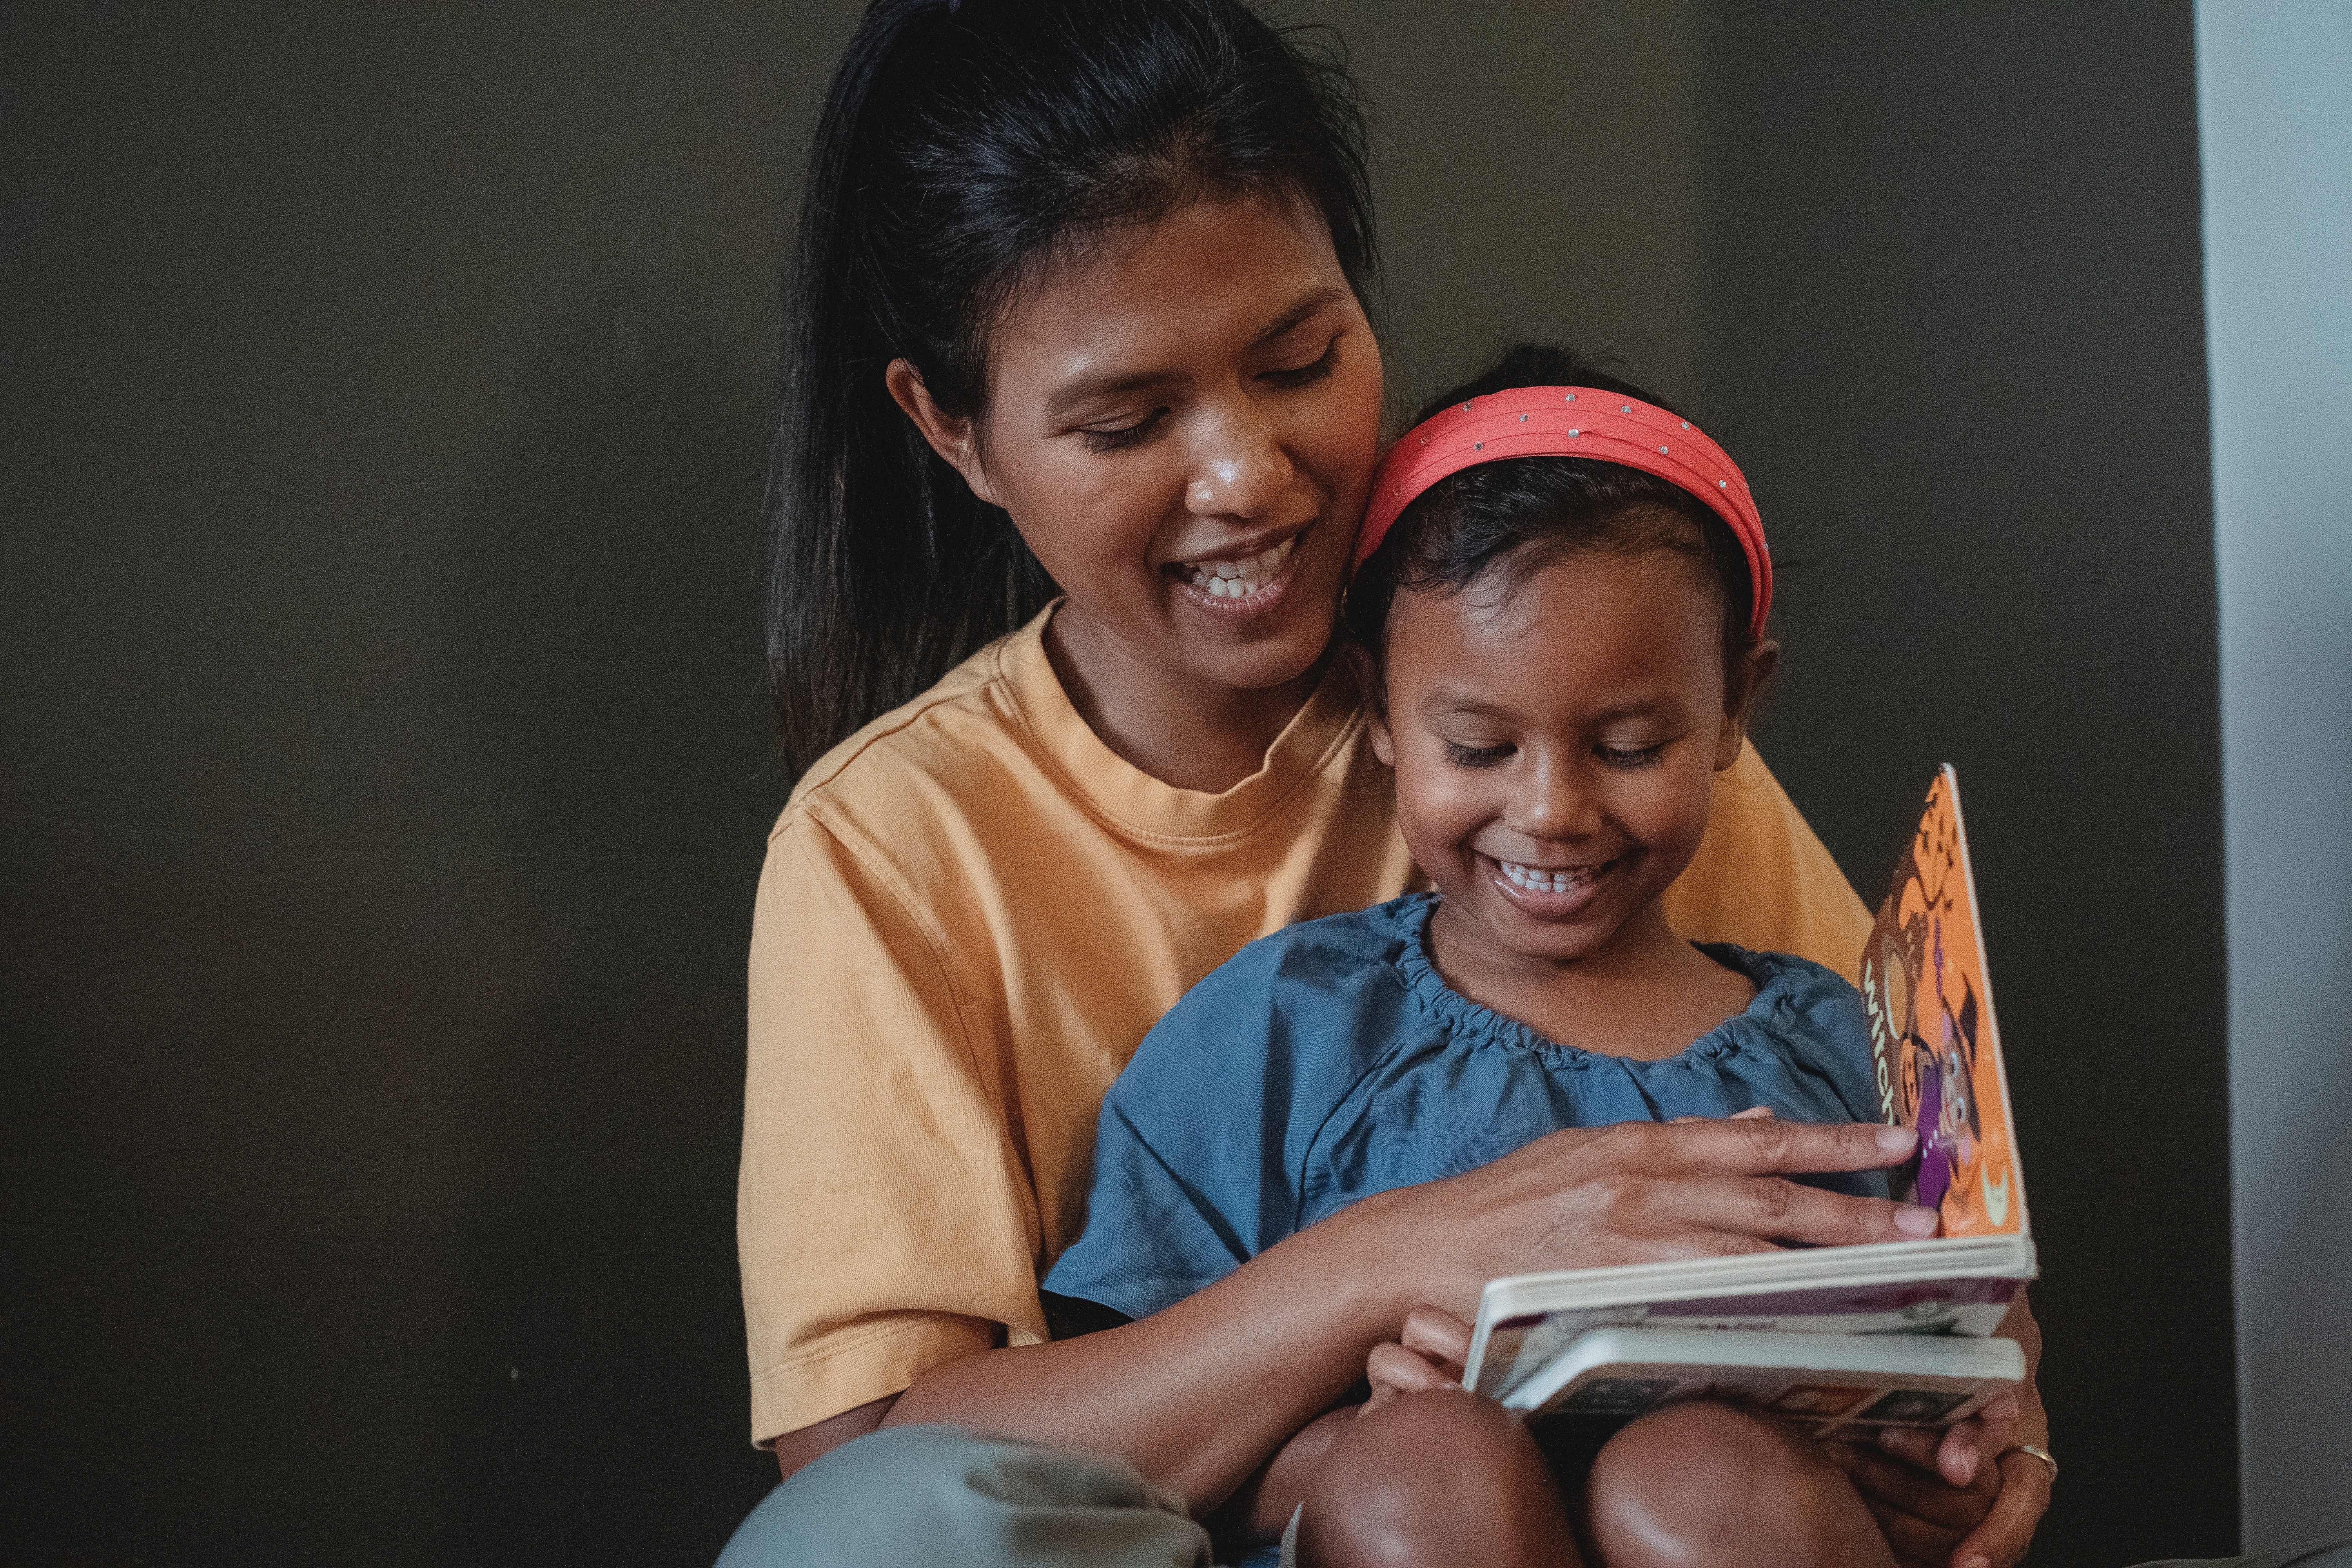 United Way is helping moms instill a love of reading in young kids with local early learning programs.